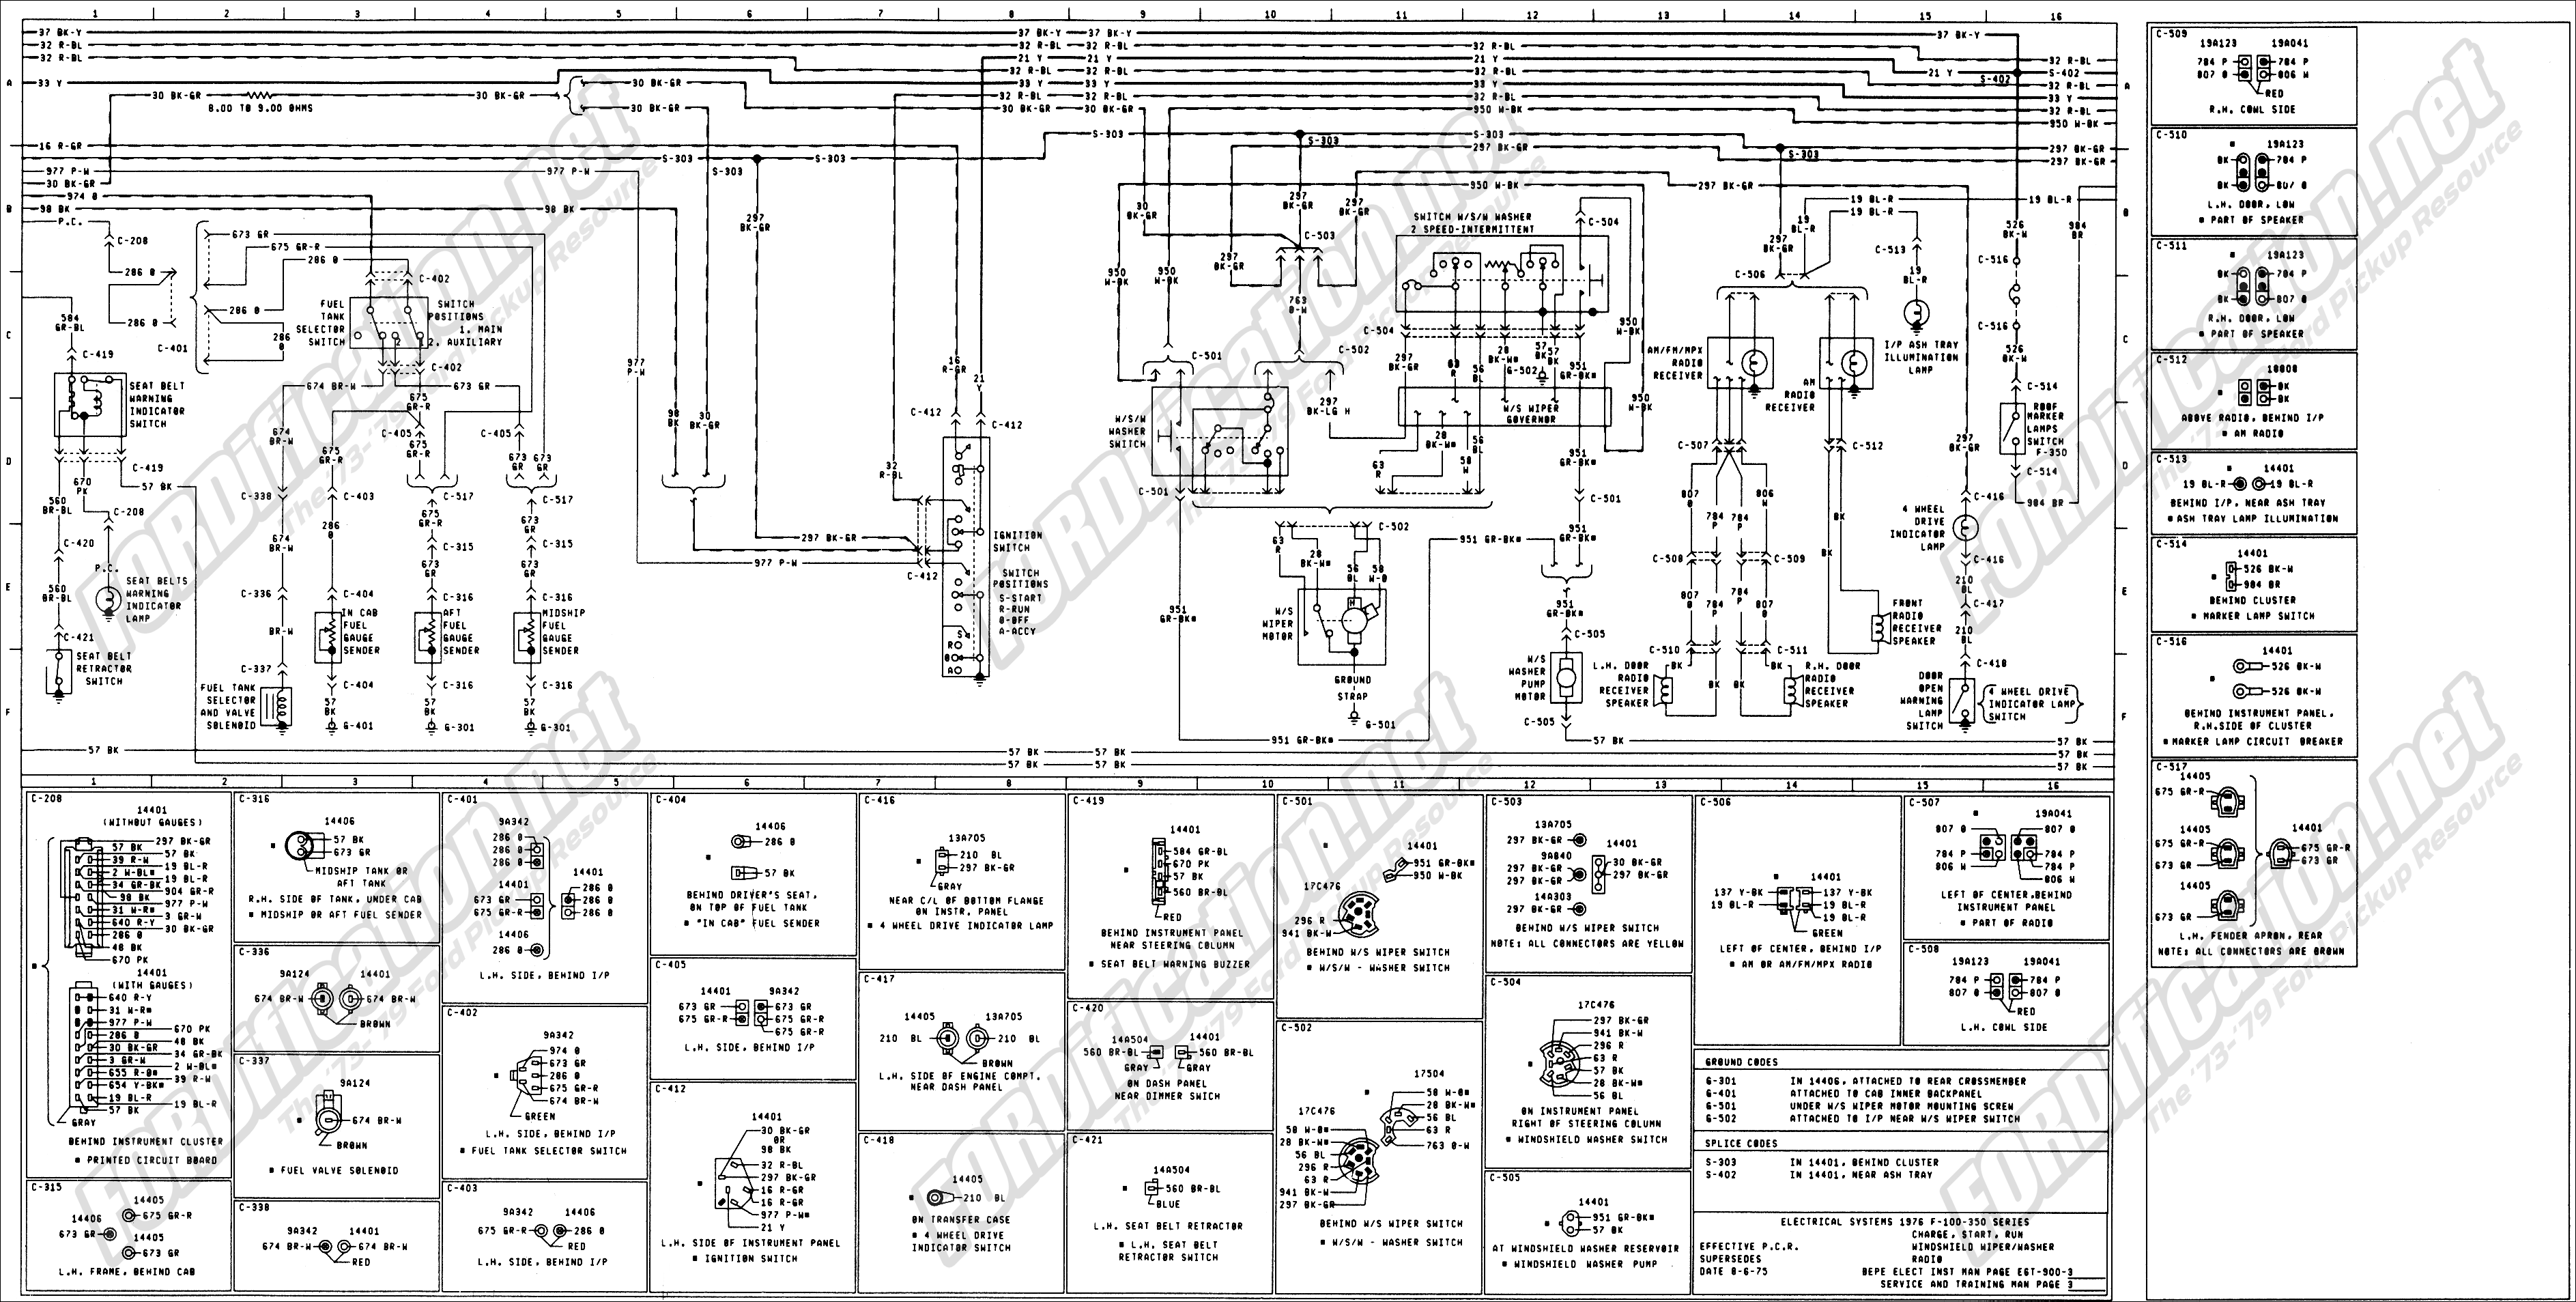 Ignition Switch Wiring Diagram For 08 F250 Libraries Ford Super Duty Fuse Box 1973 1979 Truck Diagrams U0026 Schematics Fordification Netignition